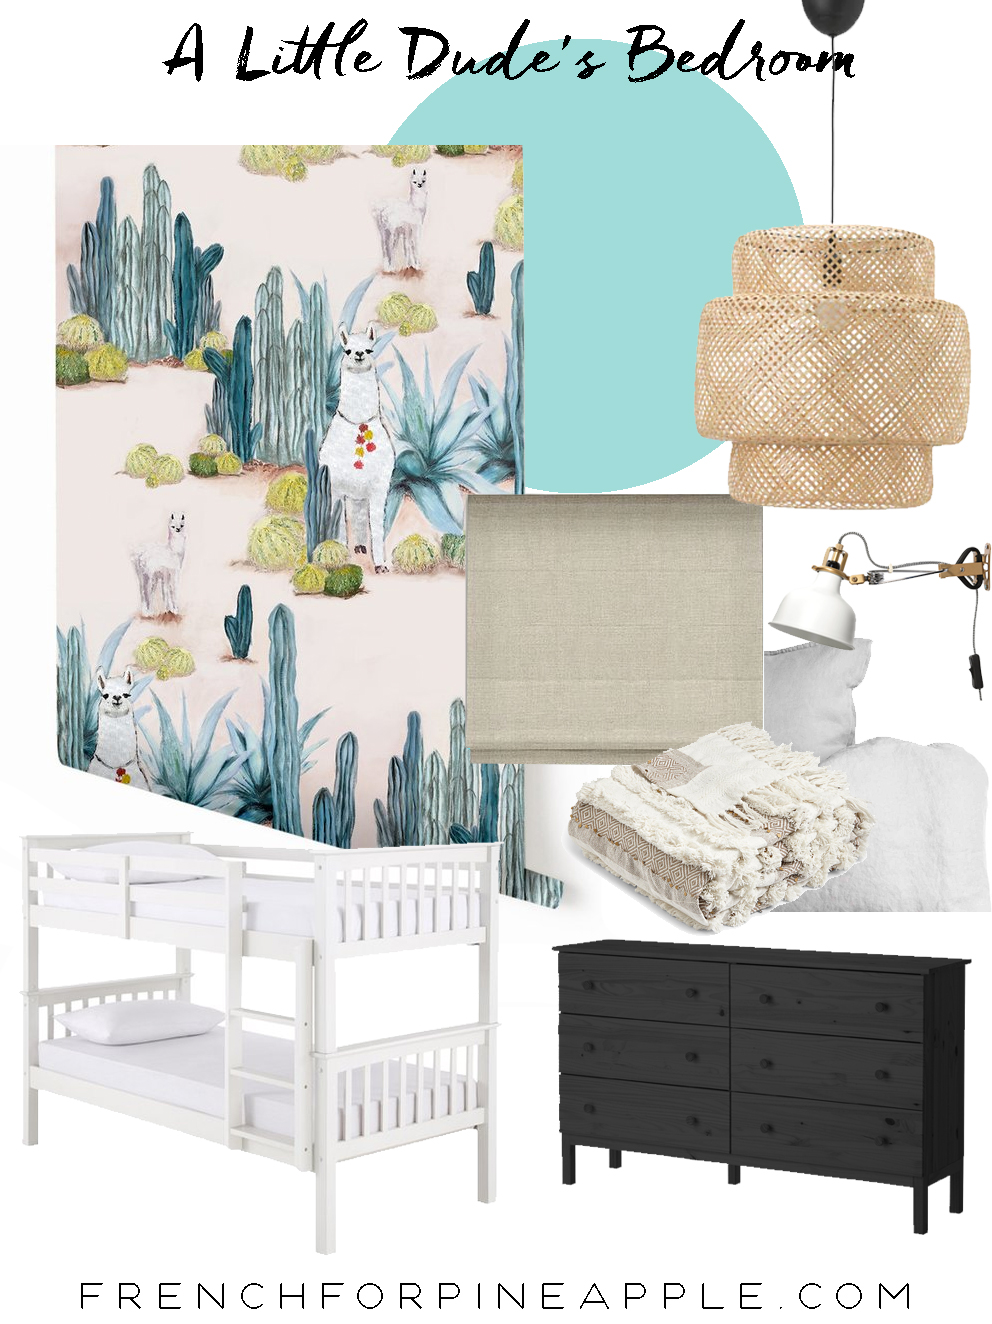 French For Pineapple Blog - A Little Dude's Bedroom Makeover. The Moodboard featuring Desert Llama wallpaper by Drop It Modern